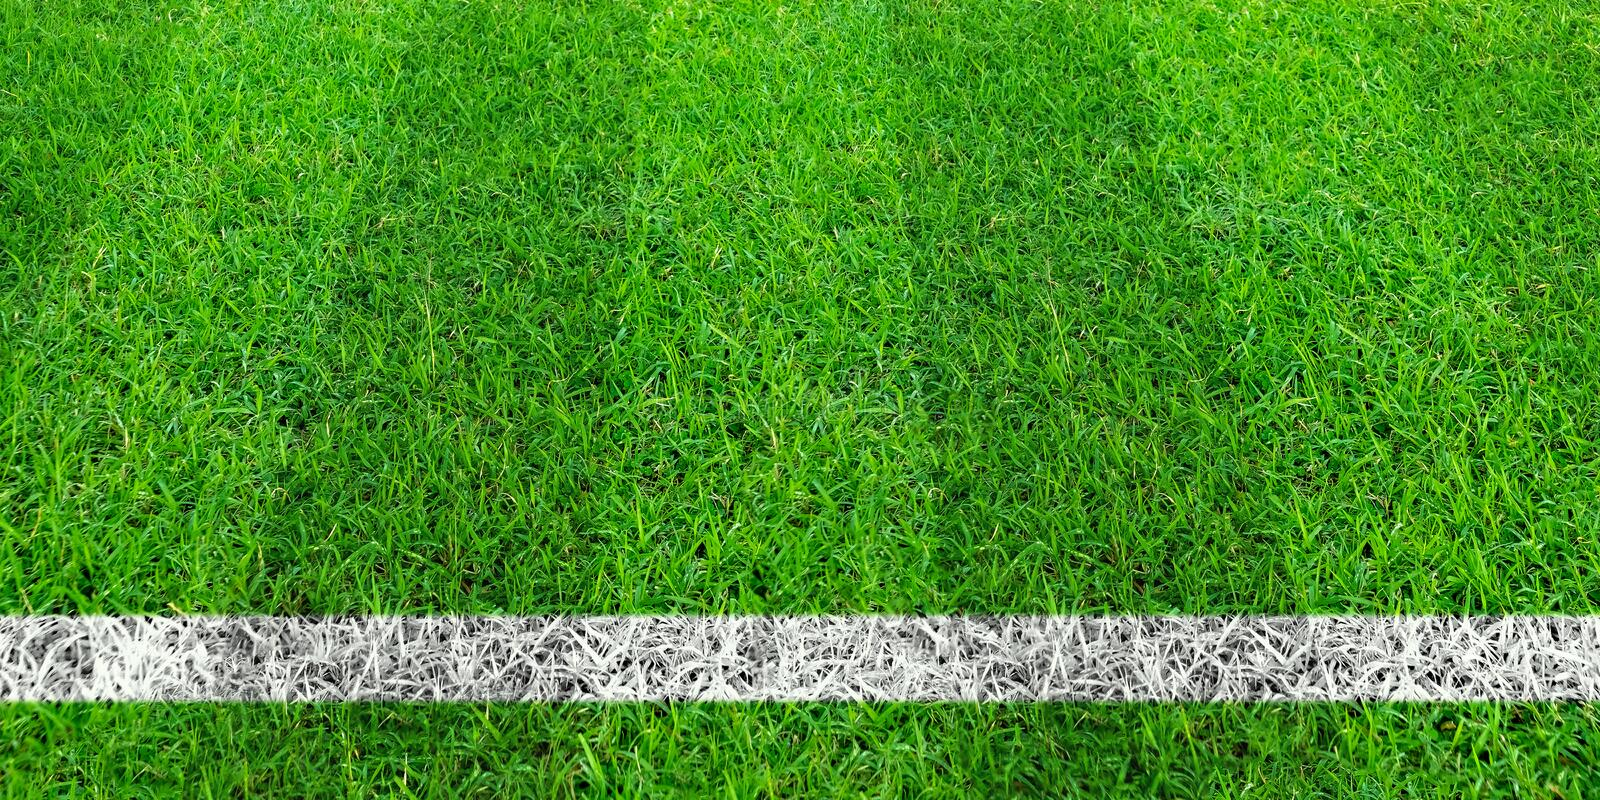 Soccer line in green grass of soccer field. Green lawn field pattern for sport background. Soccer line in green grass of soccer field. Green lawn field pattern vector illustration